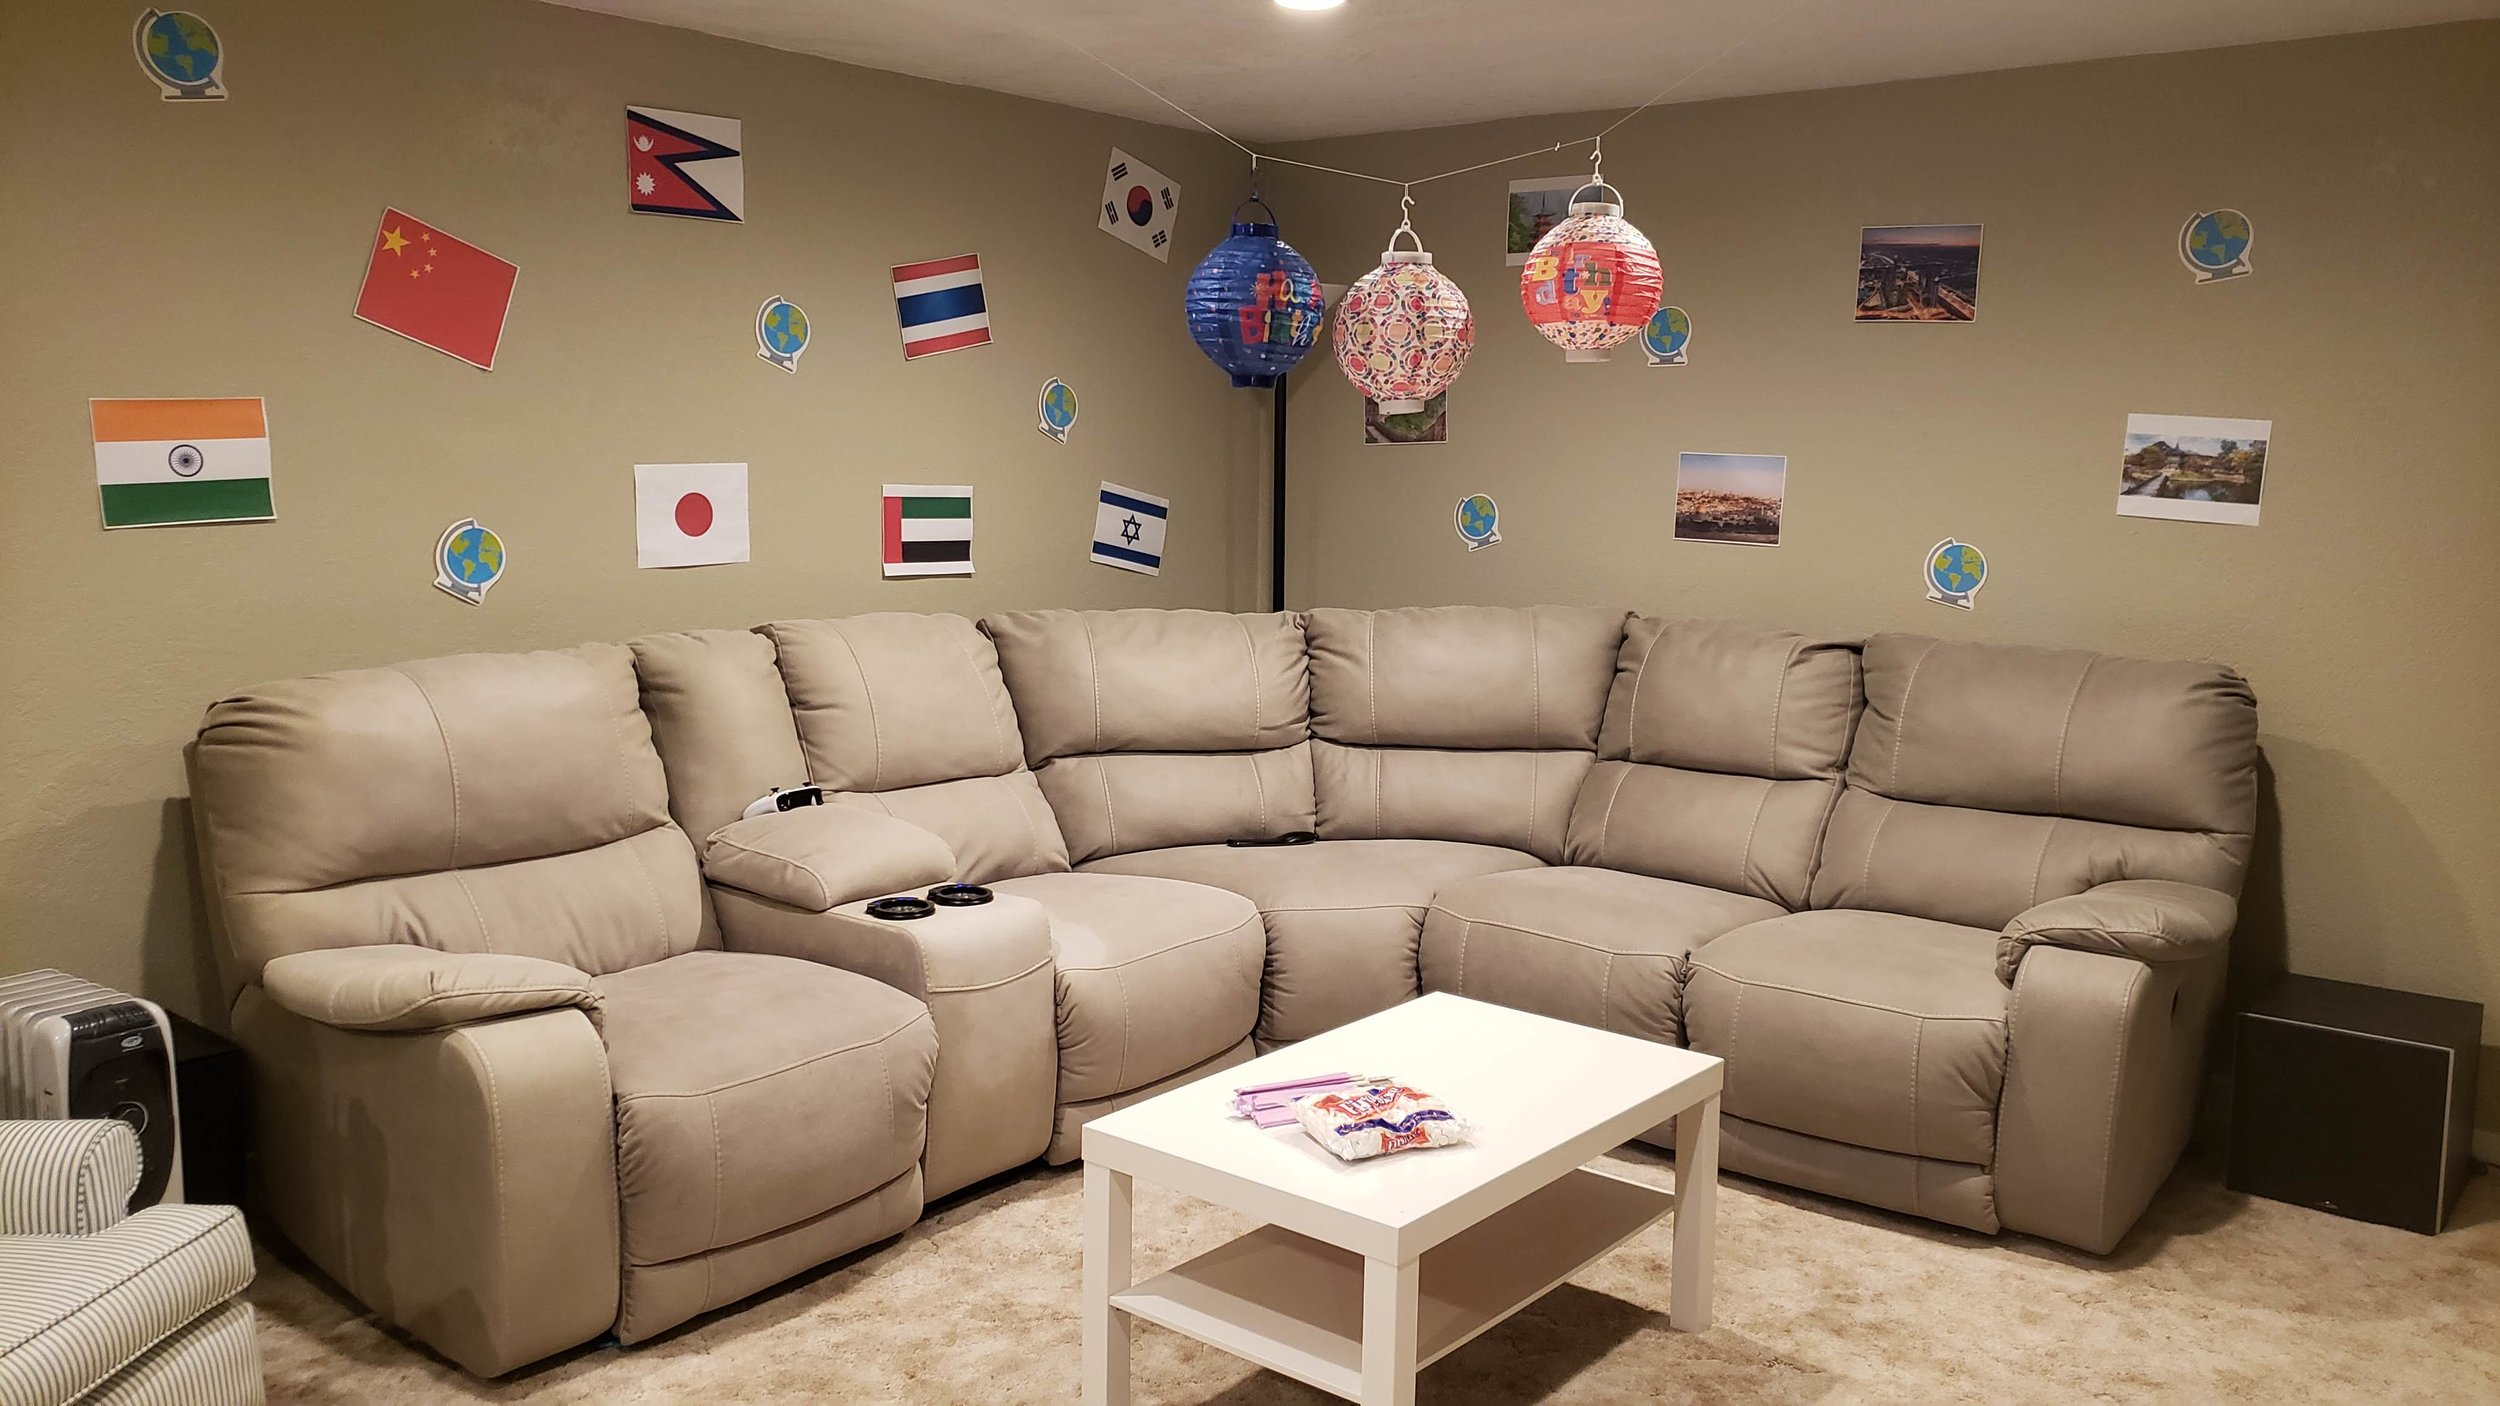 Welcome to our theater room — err, I mean, Asia! We bought the paper lanterns at Dollar Tree and I printed off flags of different Asian countries to display around the room.